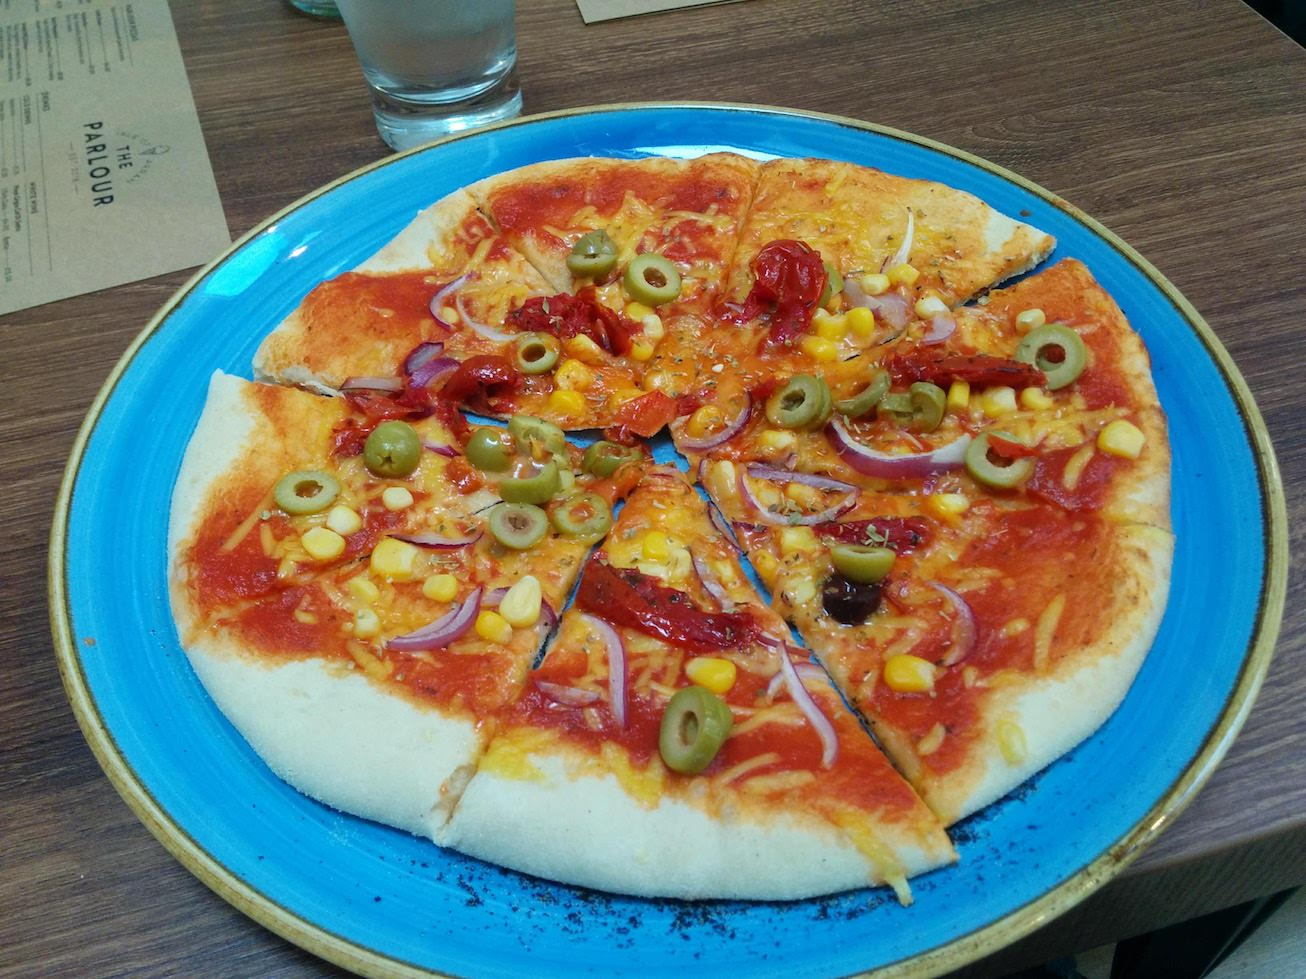 vegan pizza at The Parlour